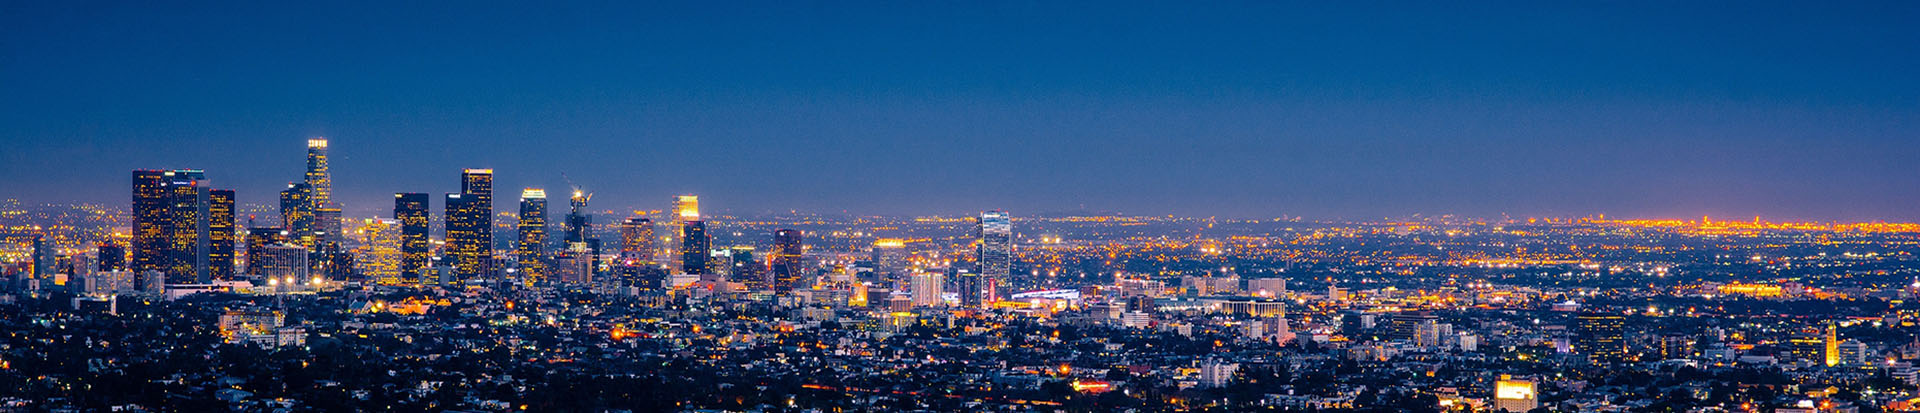 Los Angeles City Scape Banner